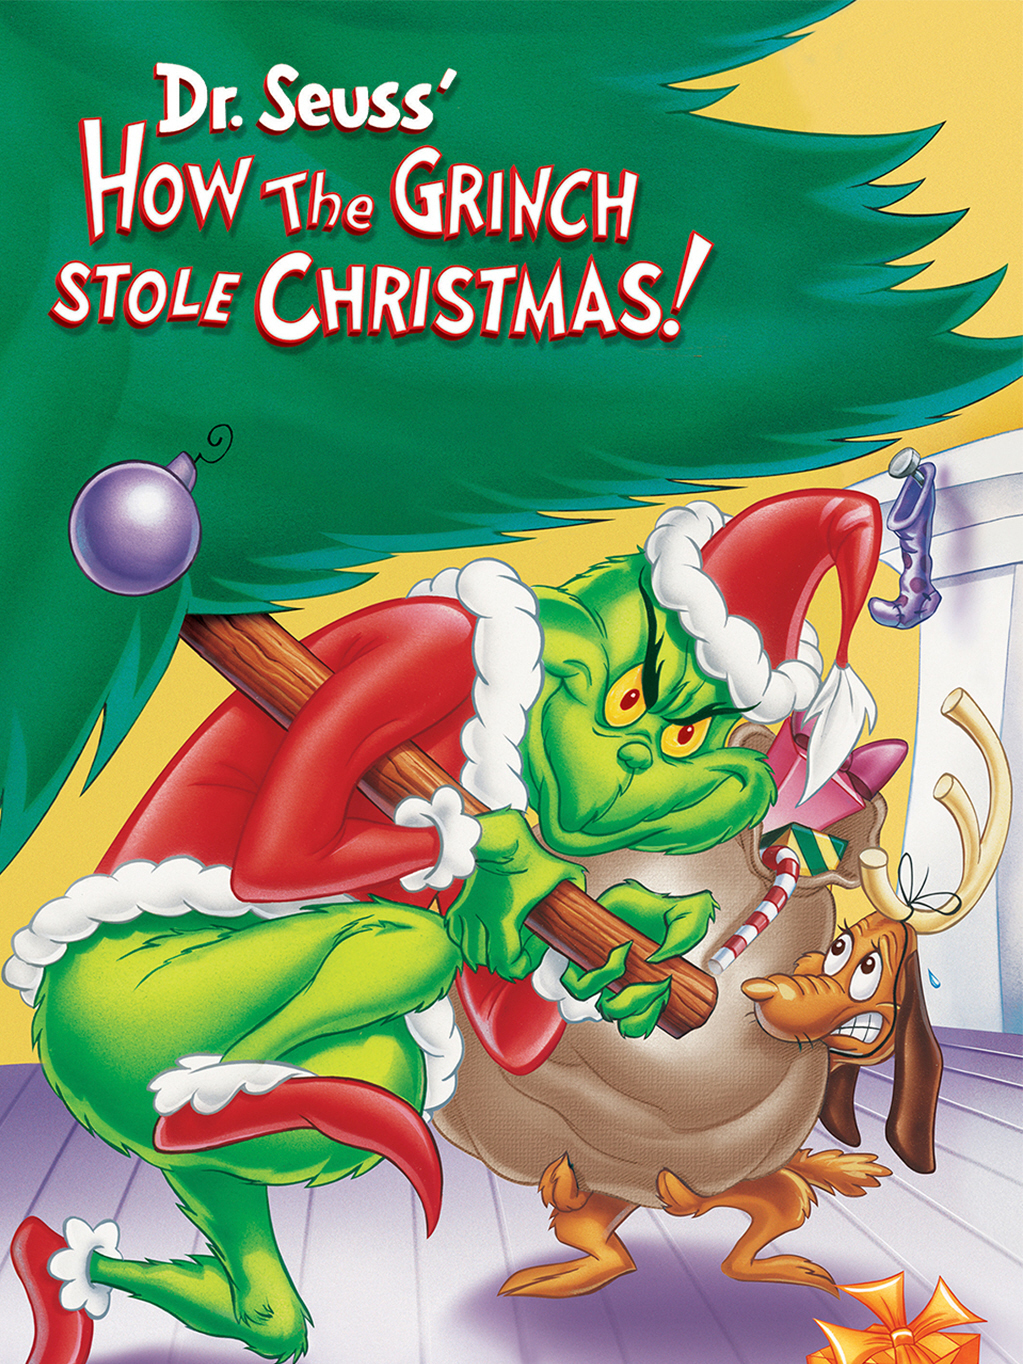 How The Grinch Stole Christmas Characters Animated.Mr Movie How The Grinch Stole Christmas 1966 Tv Special